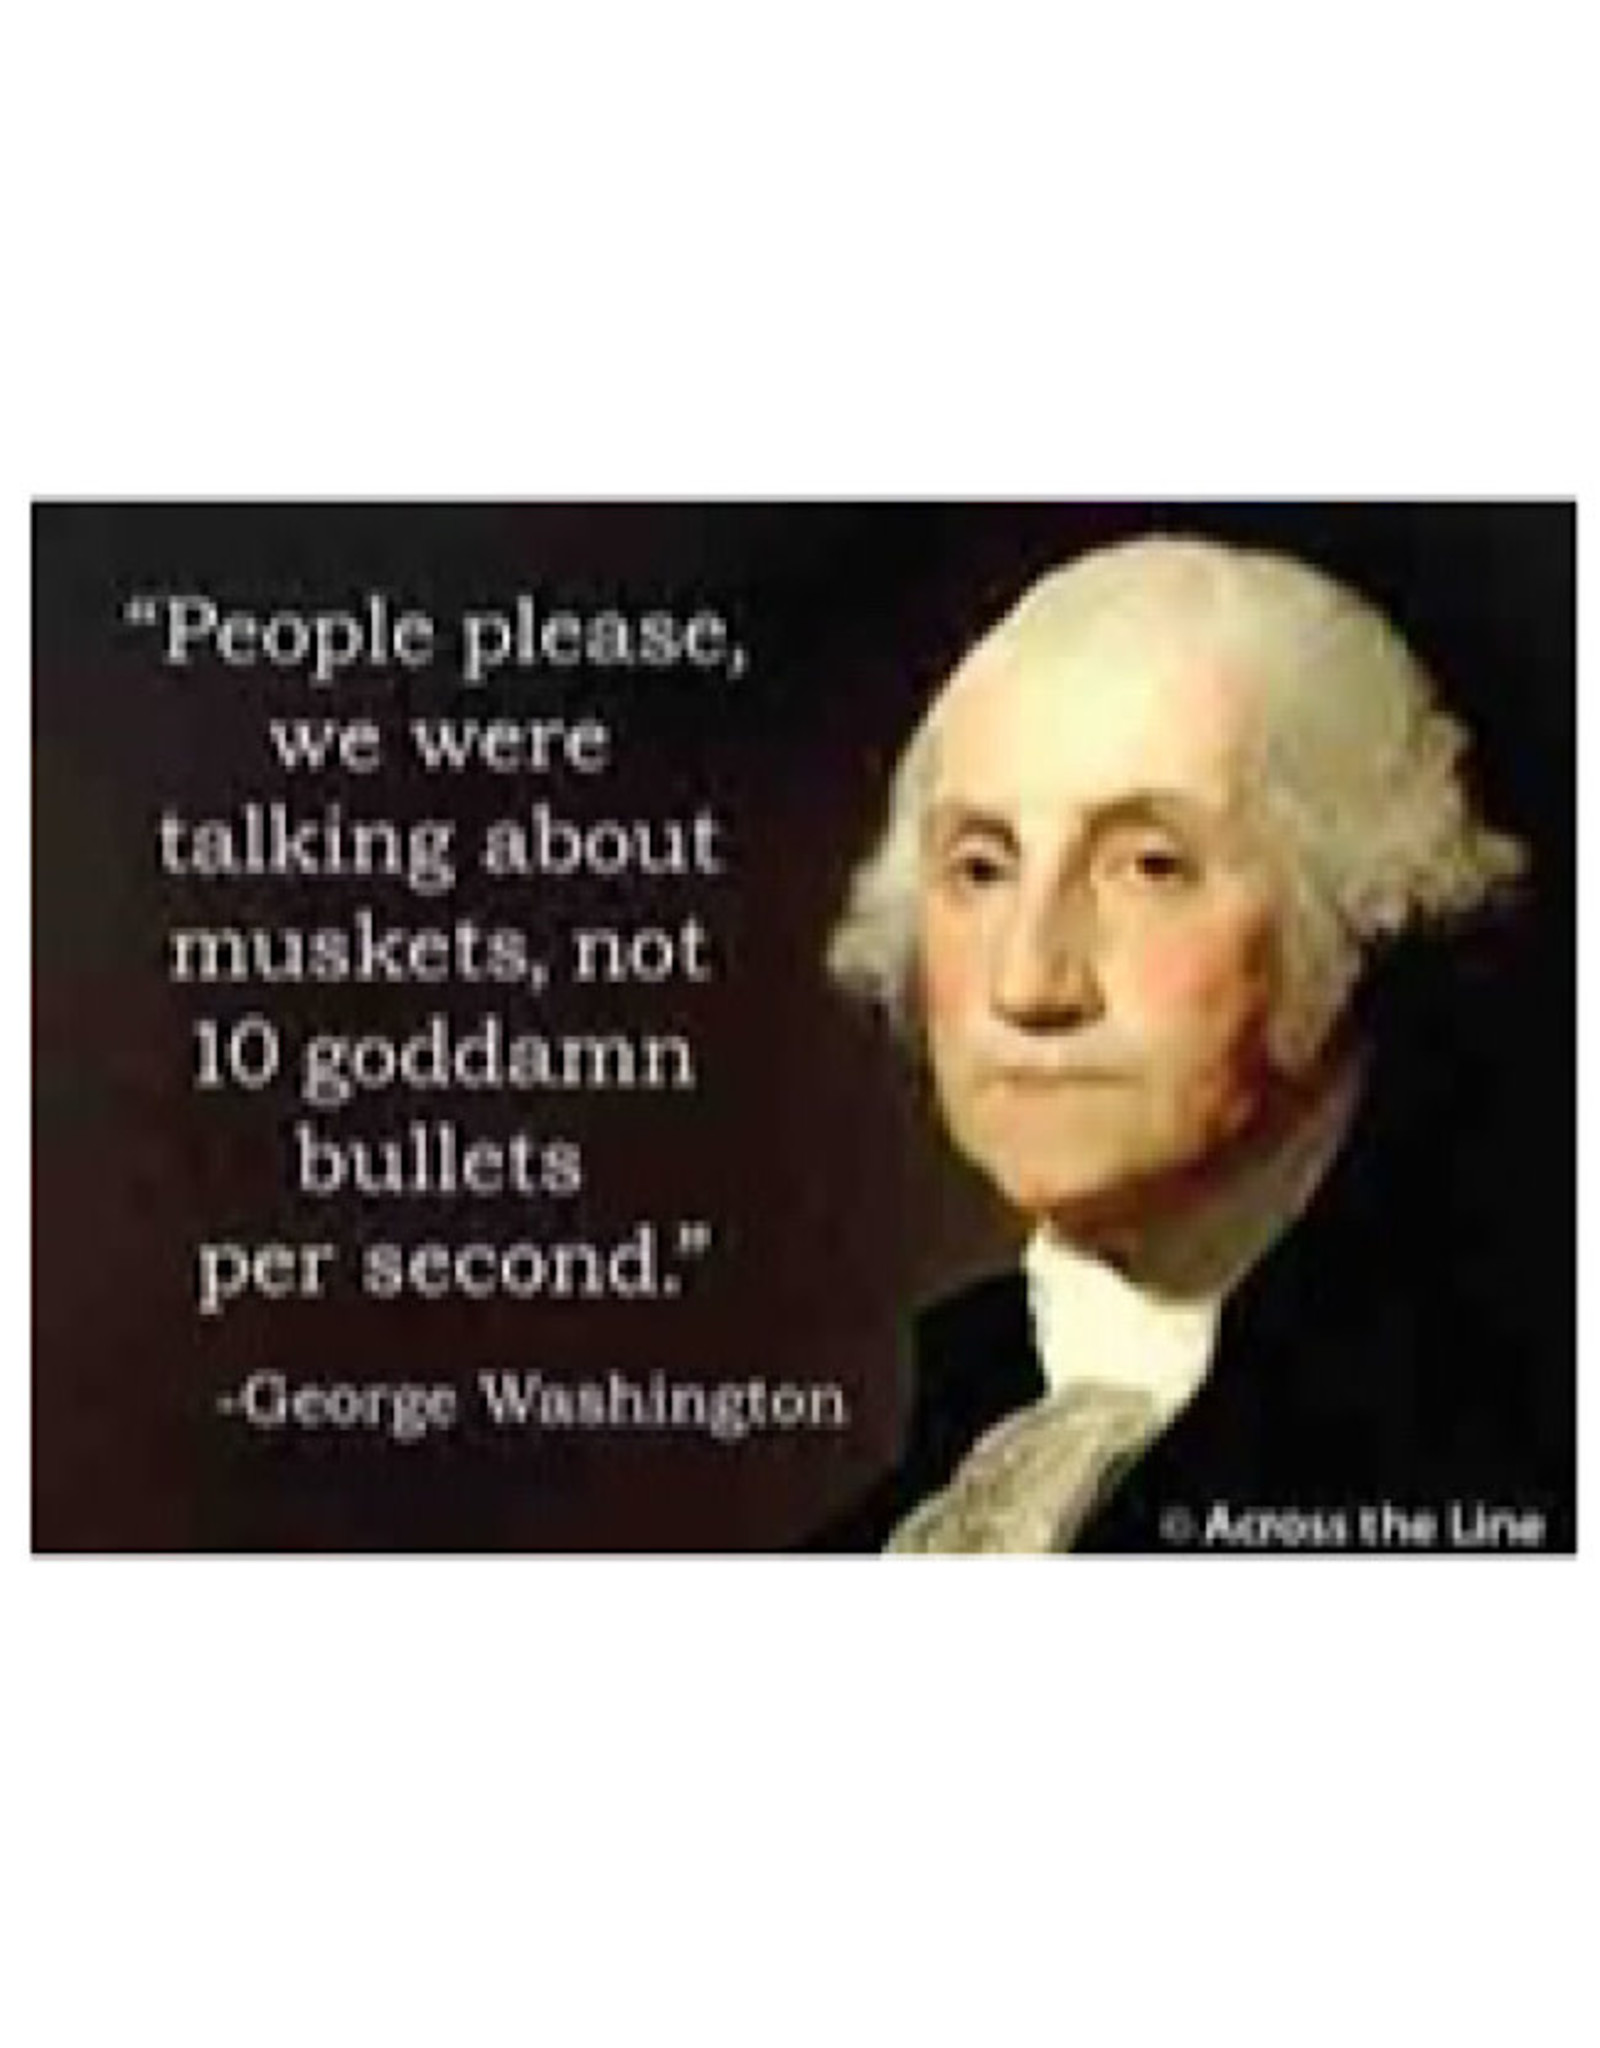 Magnet - People Please, We Were Talking About Muskets, Not 10 Goddamn Bullets Per Second (George Washington)